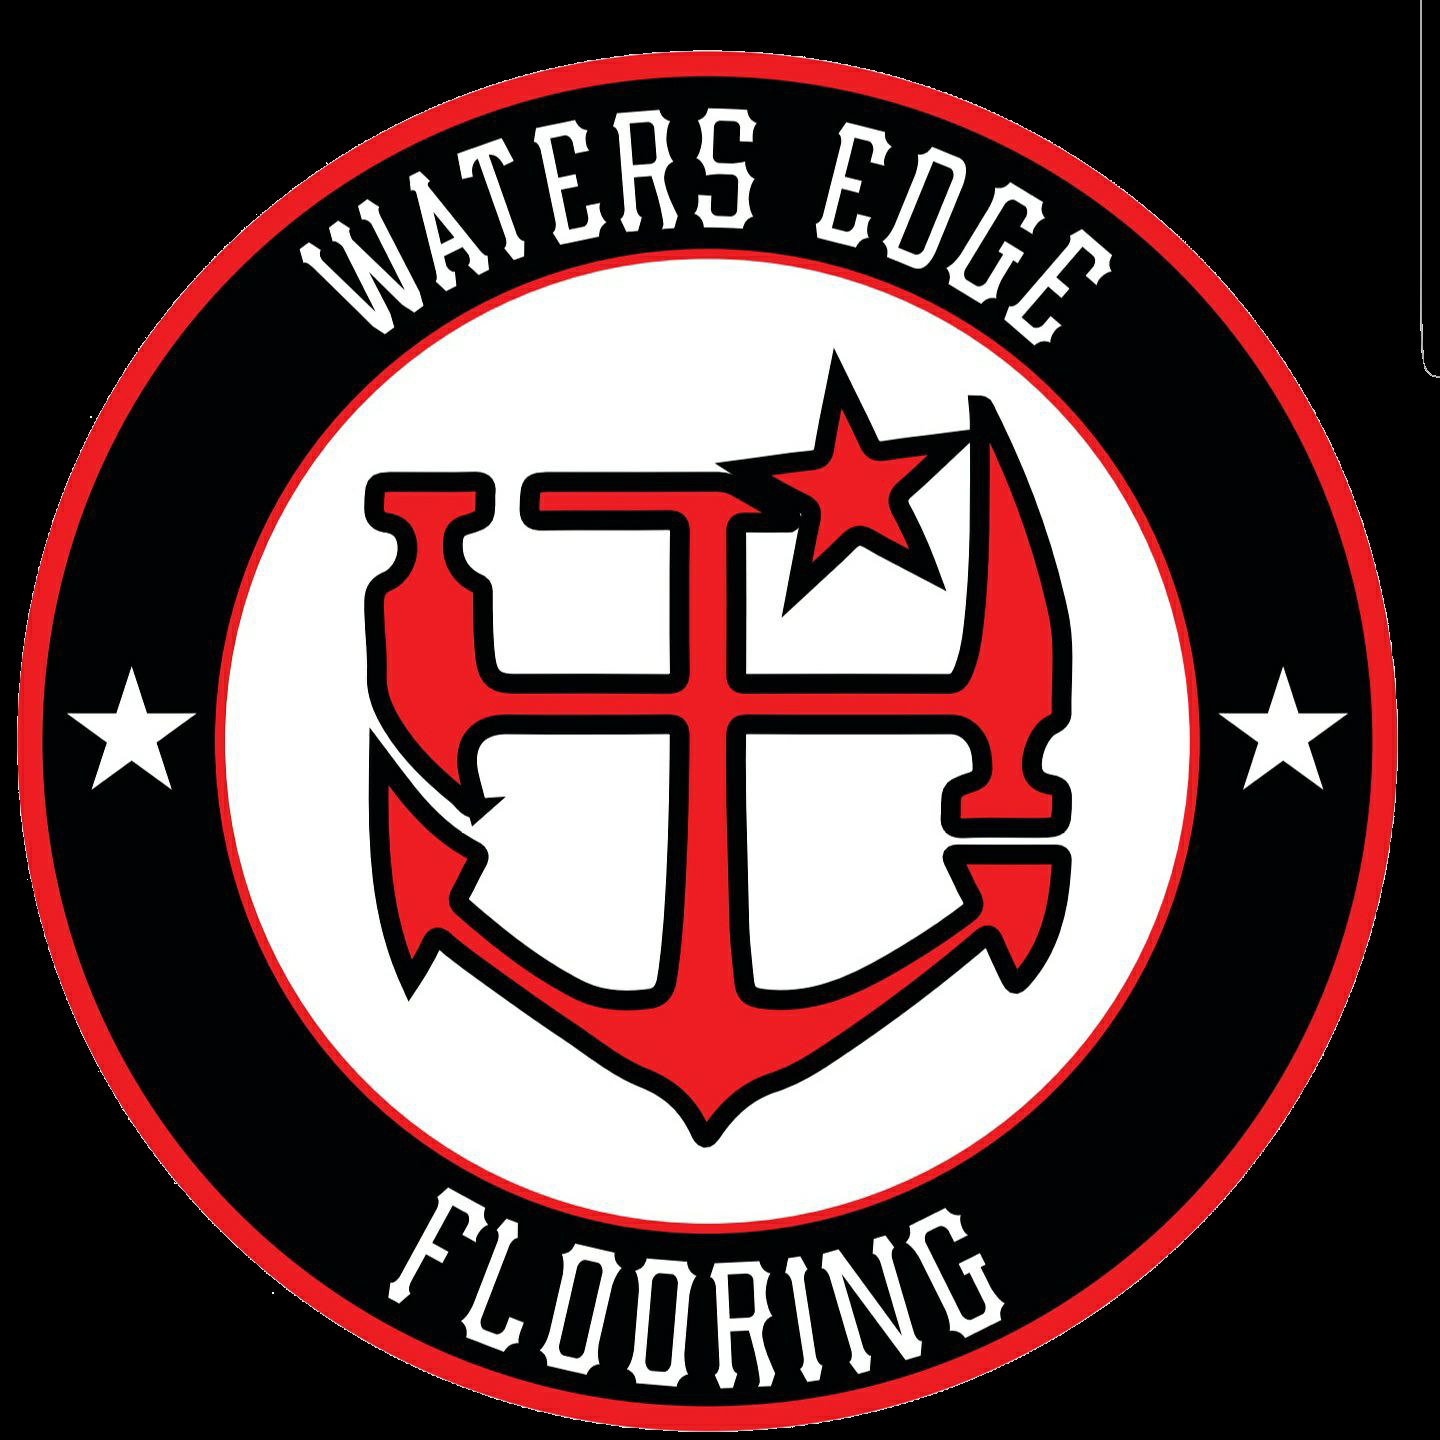 hardwood flooring logos of downriver carpet flooring for waters edge logo ii